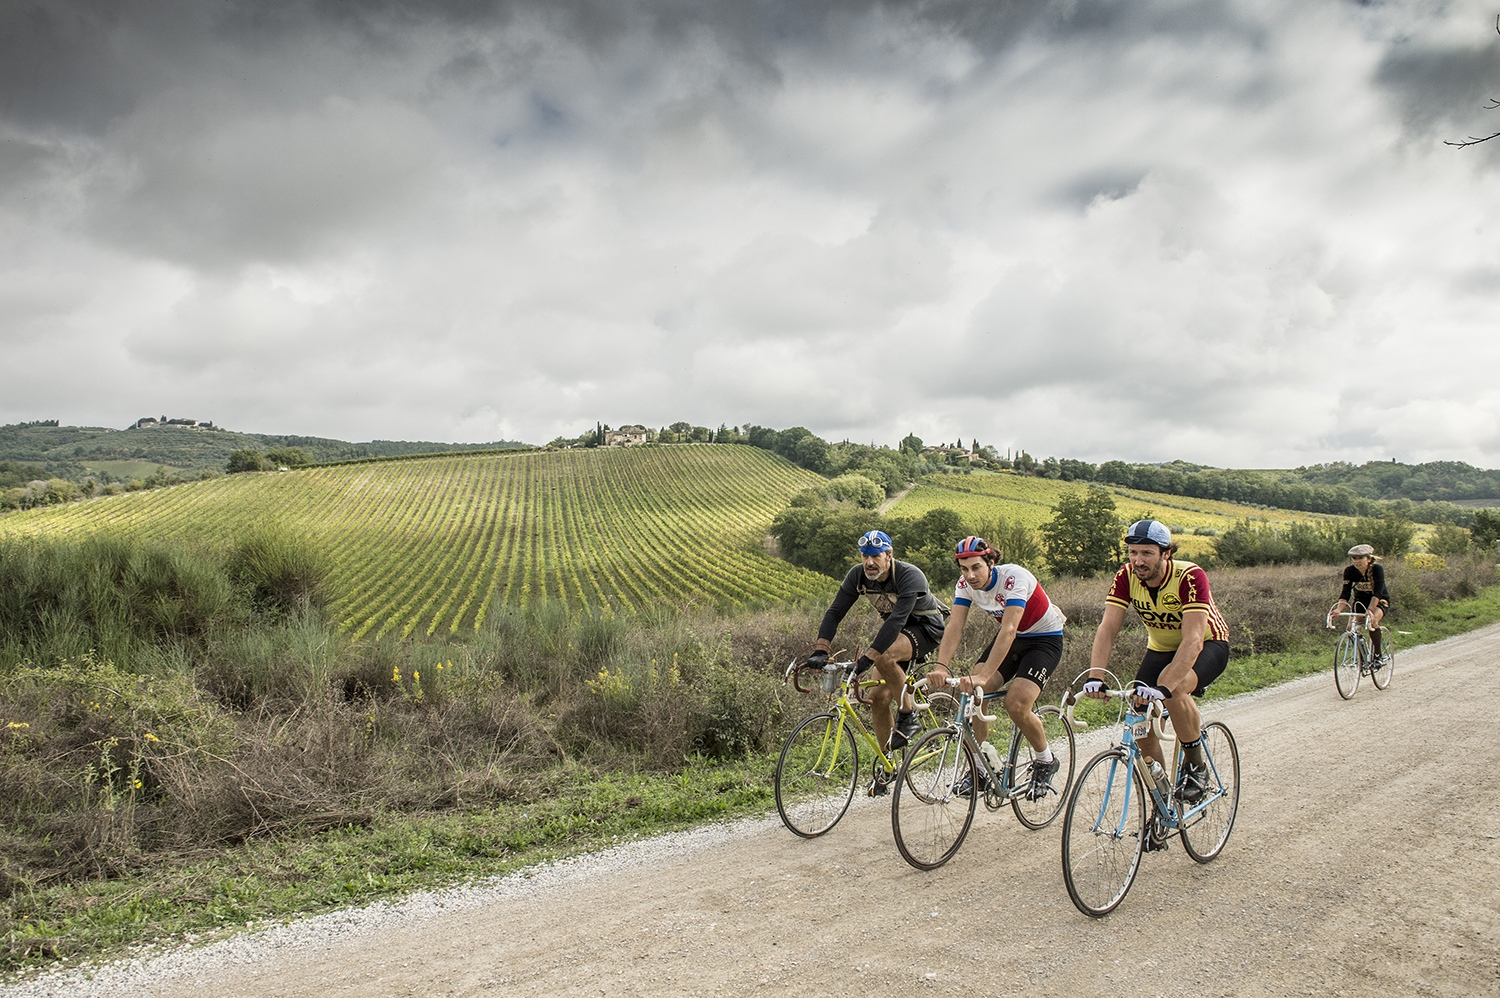 Eroica di Gaiole: traditional cycle vintage race in the middle of tuscan vineyards